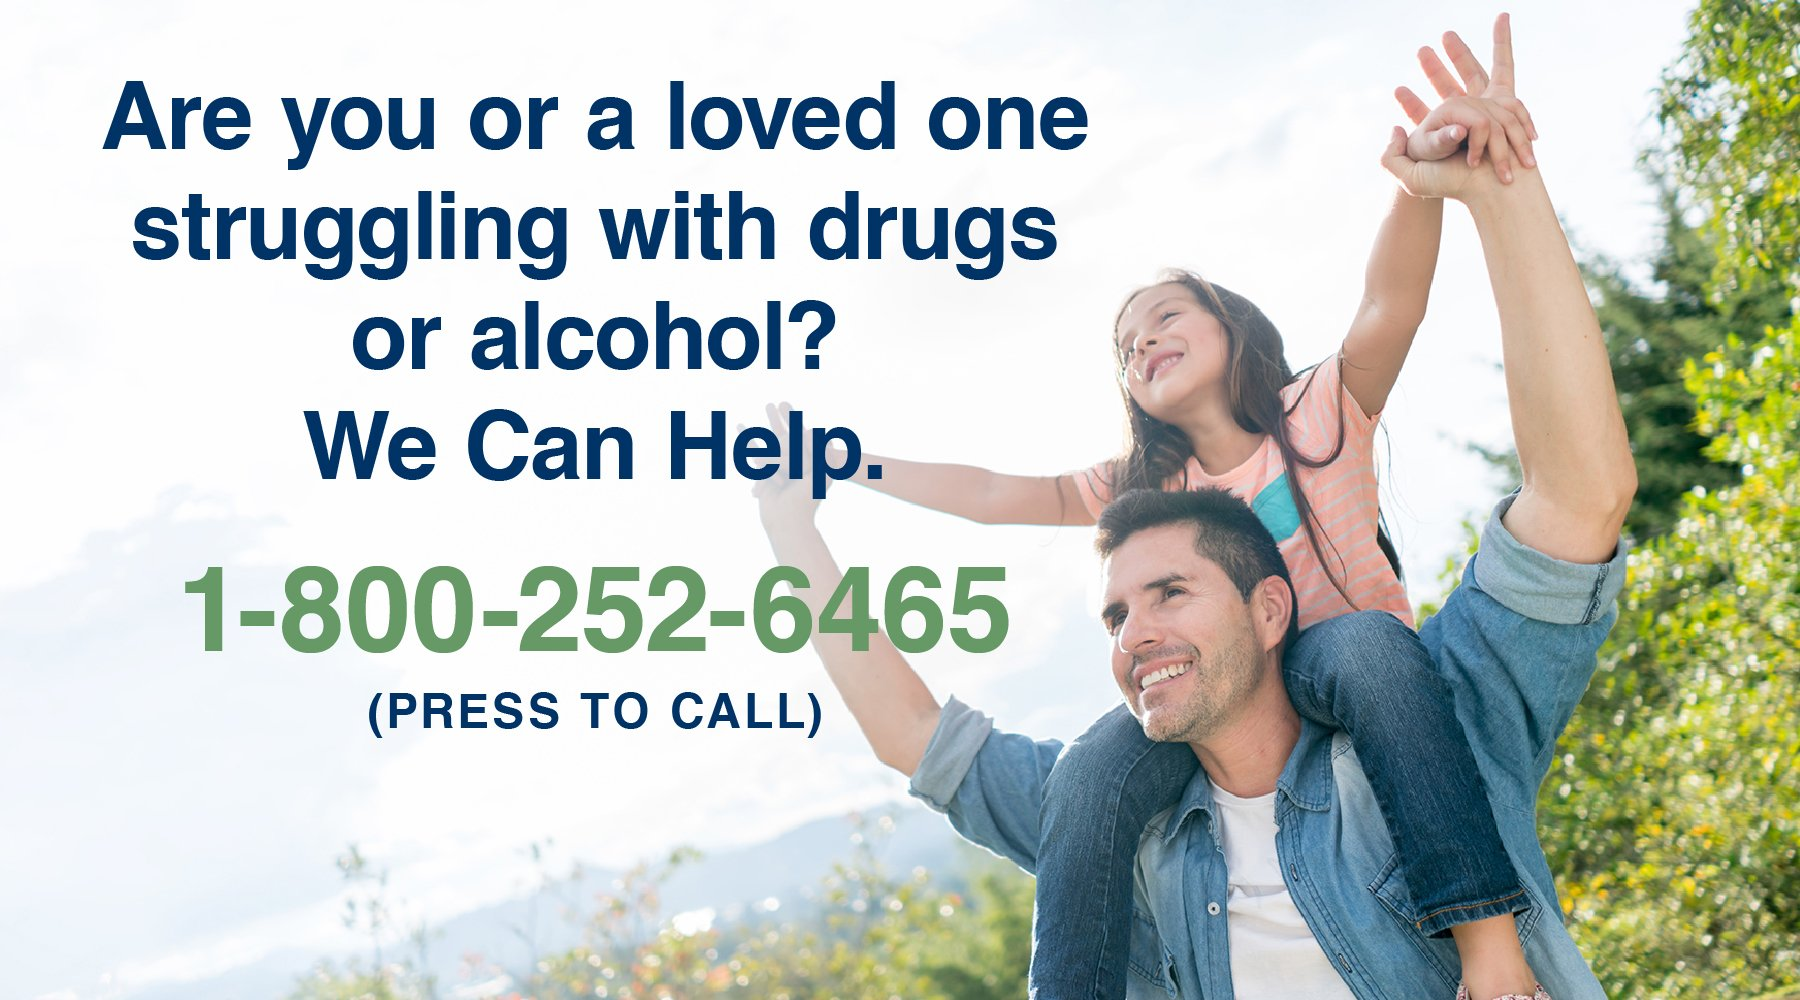 Contact number for AdCare substance abuse treatment centers in Massachusetts and Rhode Island